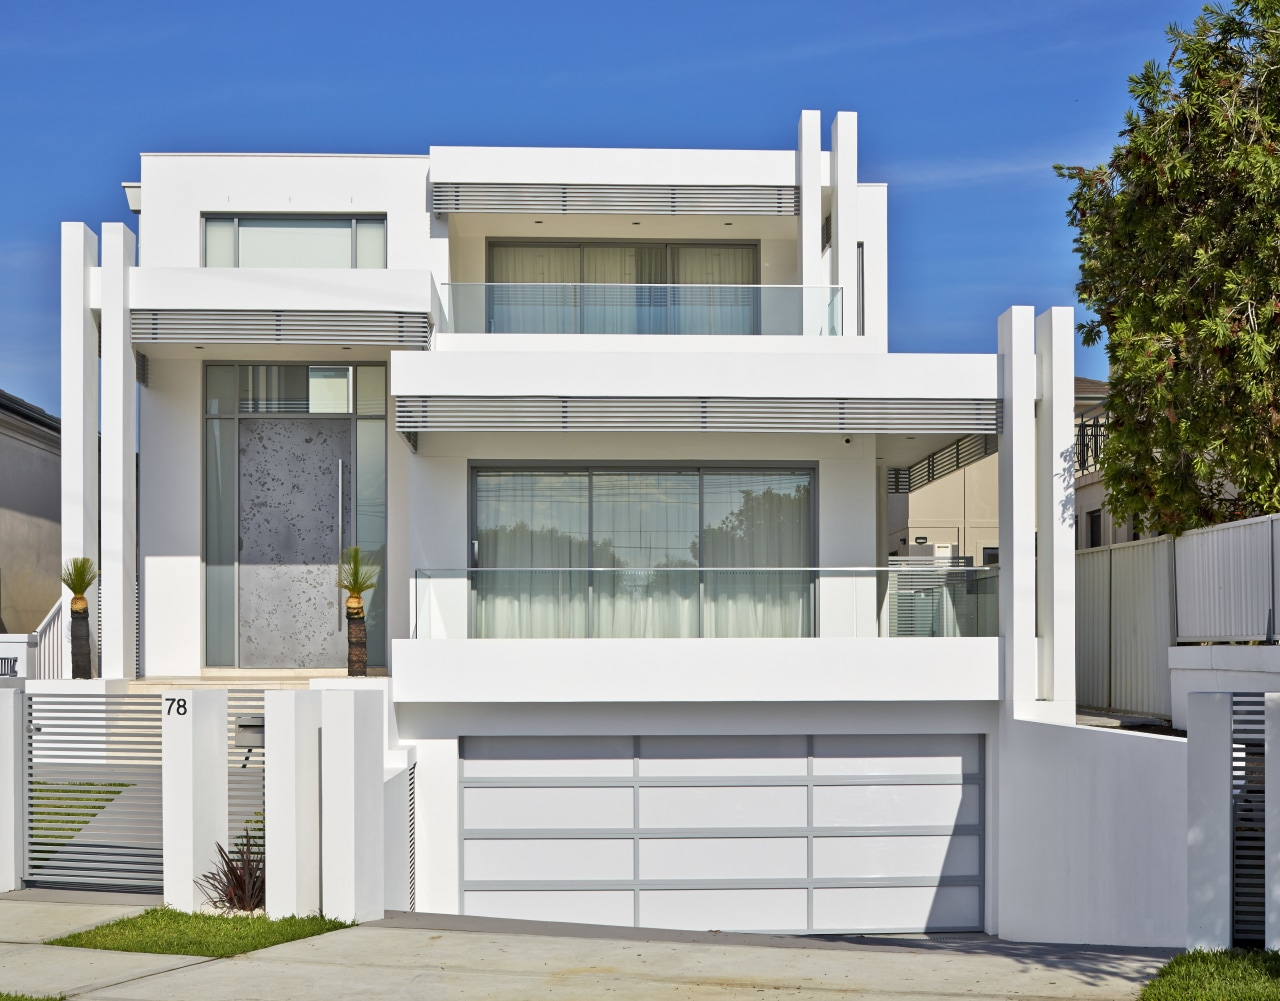 This home was designed and built by Starr architecture, building, door, elevation, facade, home, house, official residence, property, real estate, residential area, window, white, gray